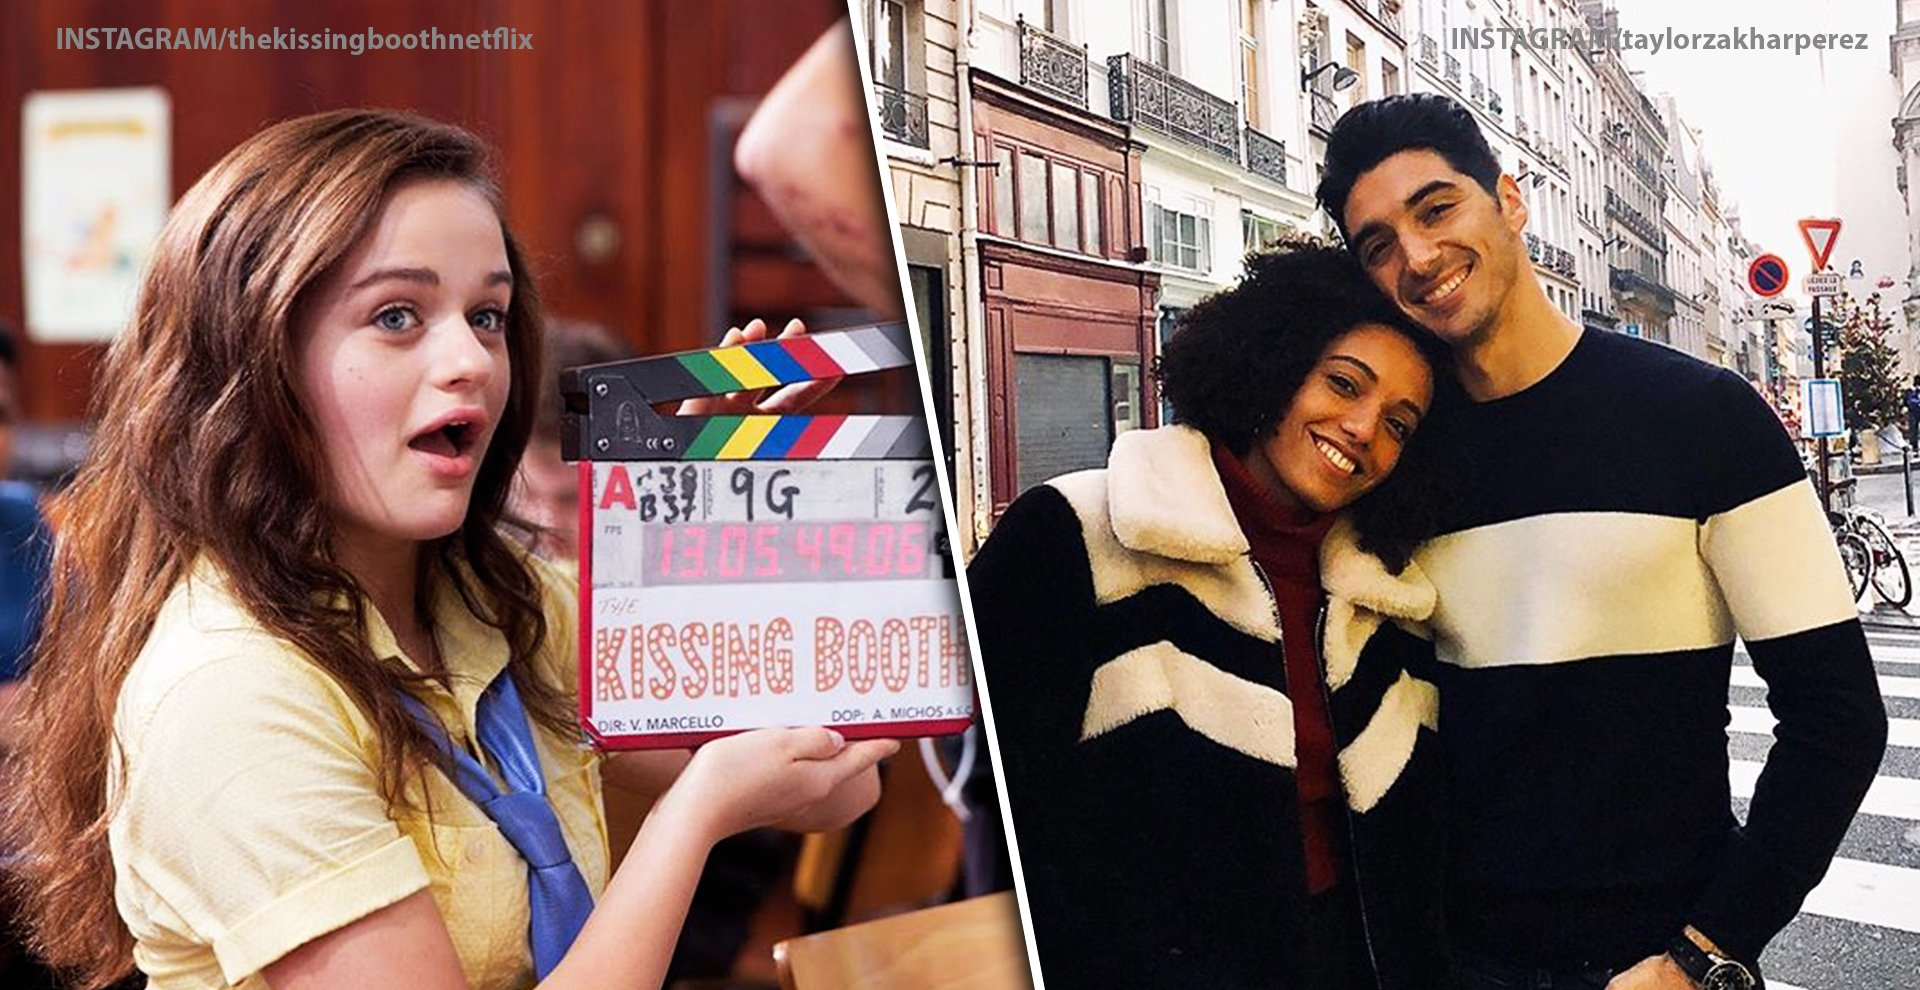 The Kissing Booth 2: The Cast's Relationships and Lifestyle